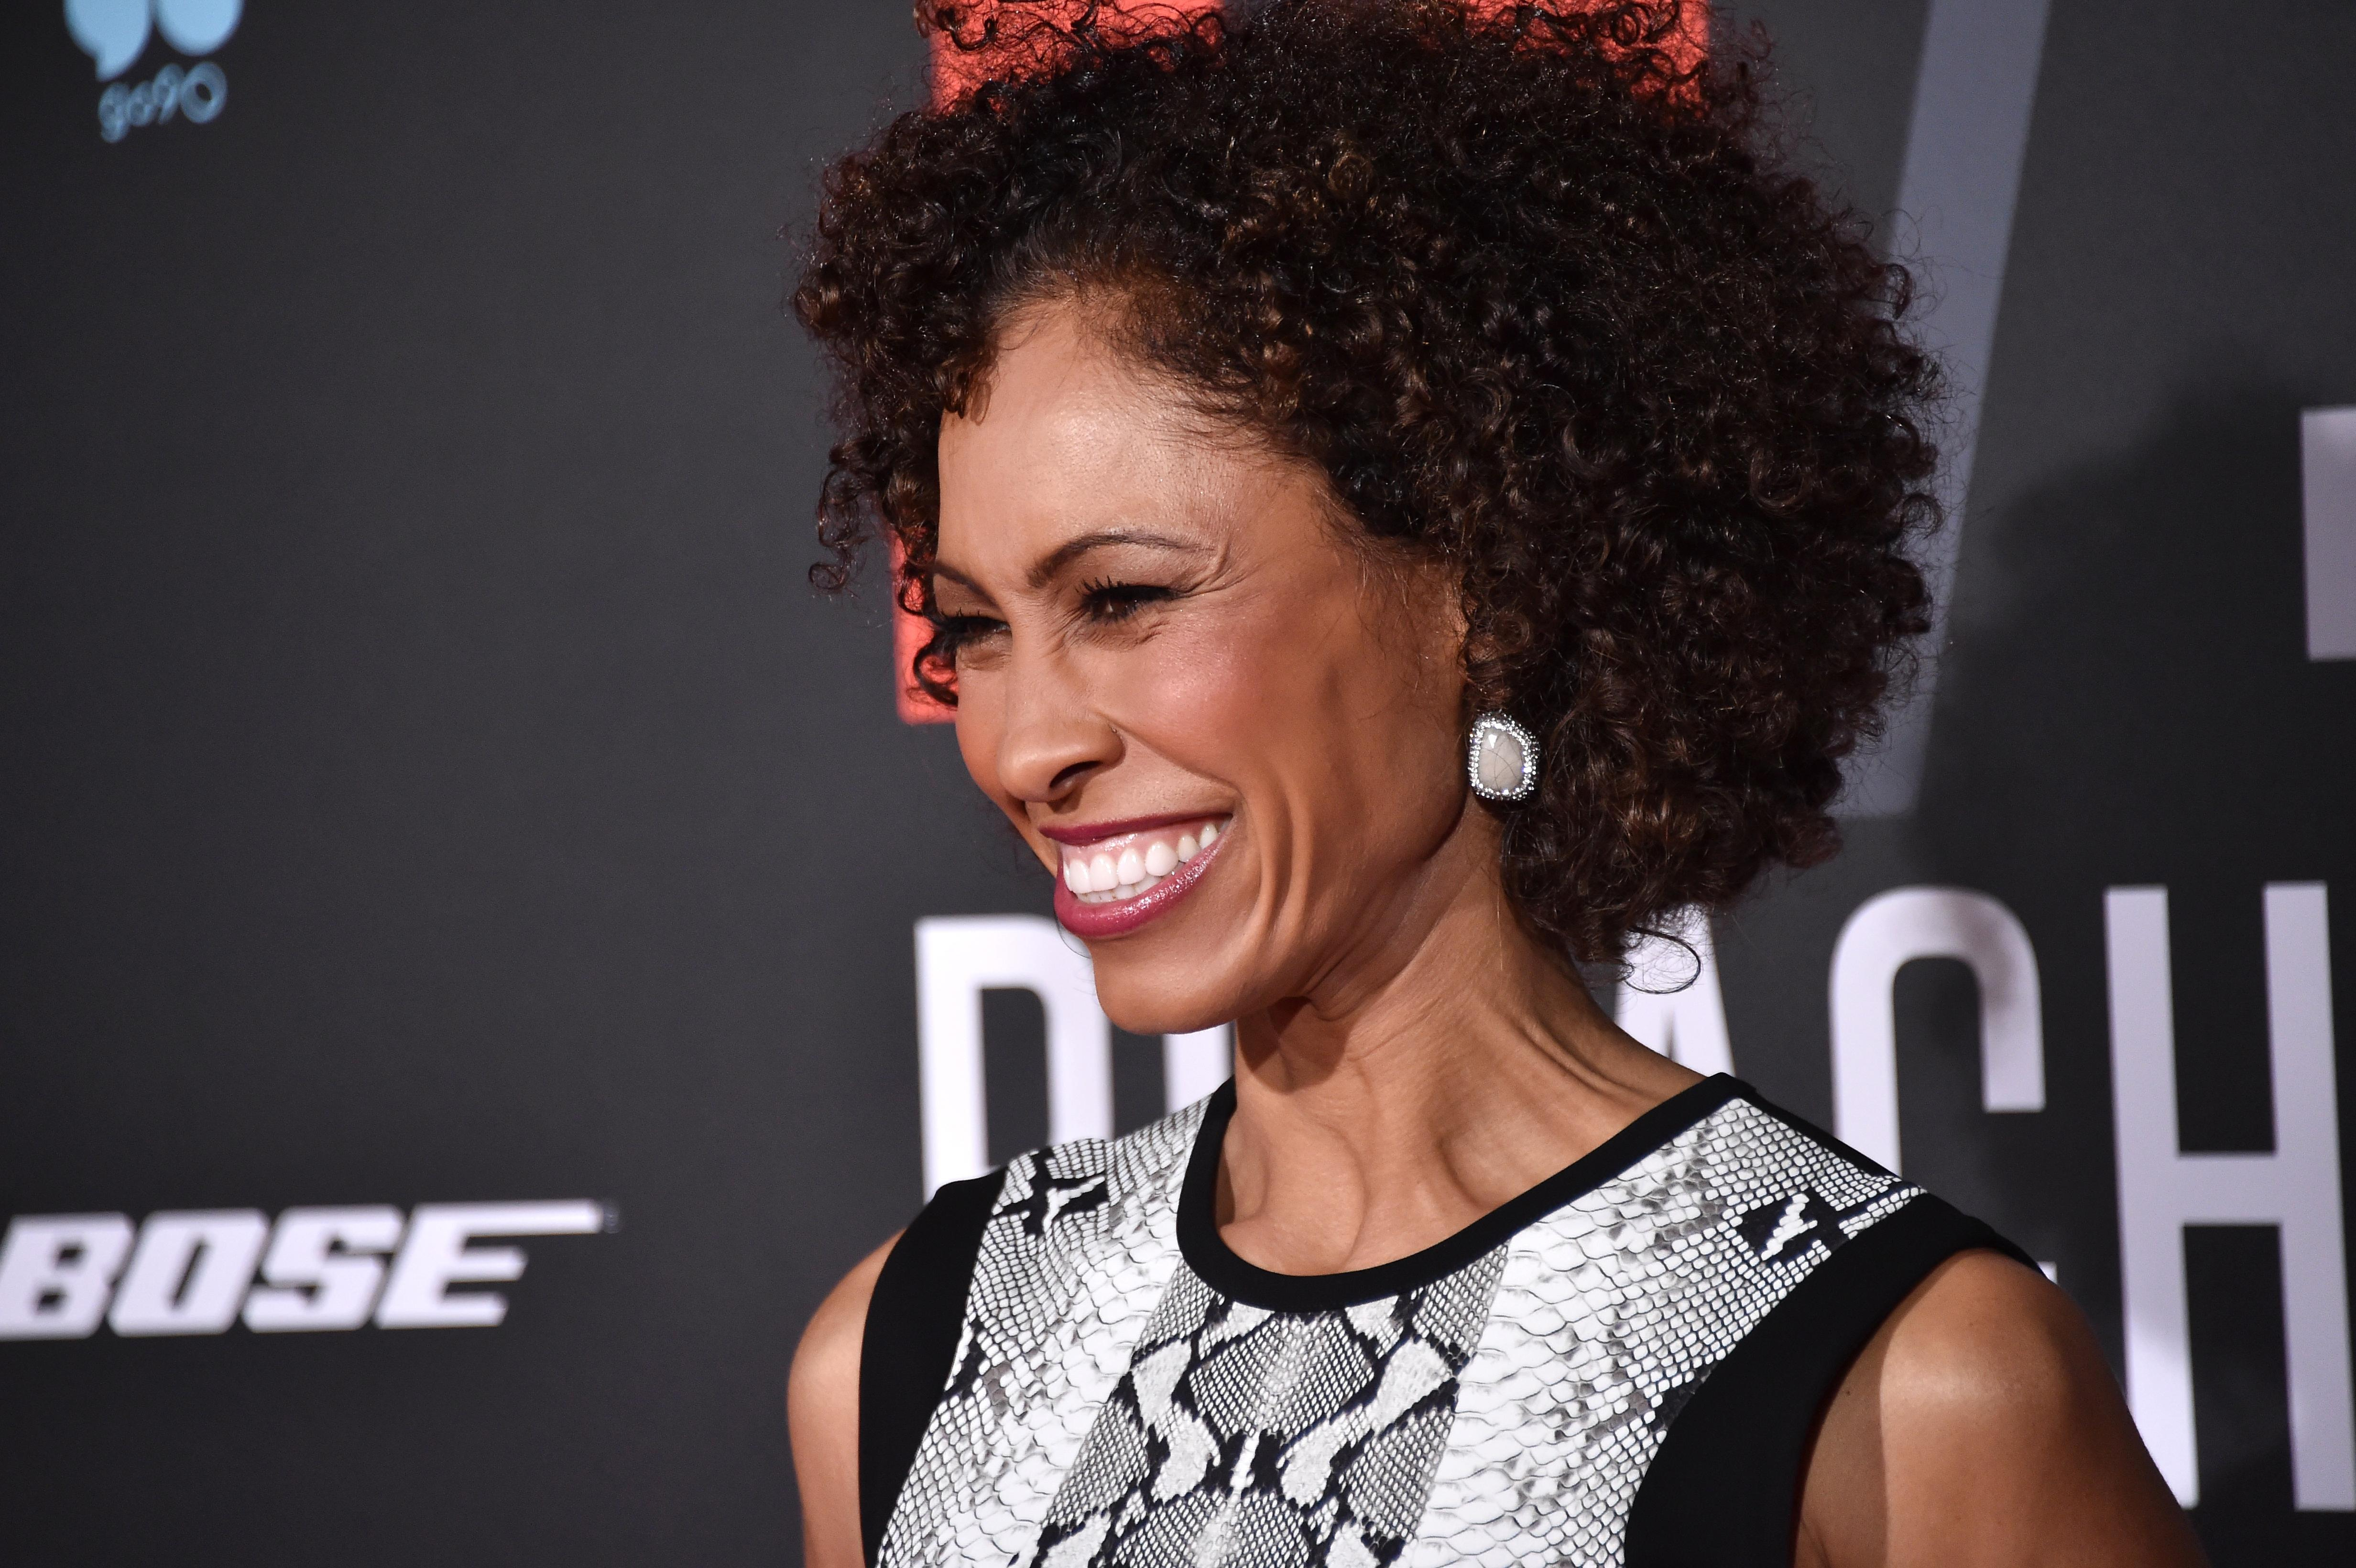 Sage Steele ripped for complaining about airport protests making her life tougher